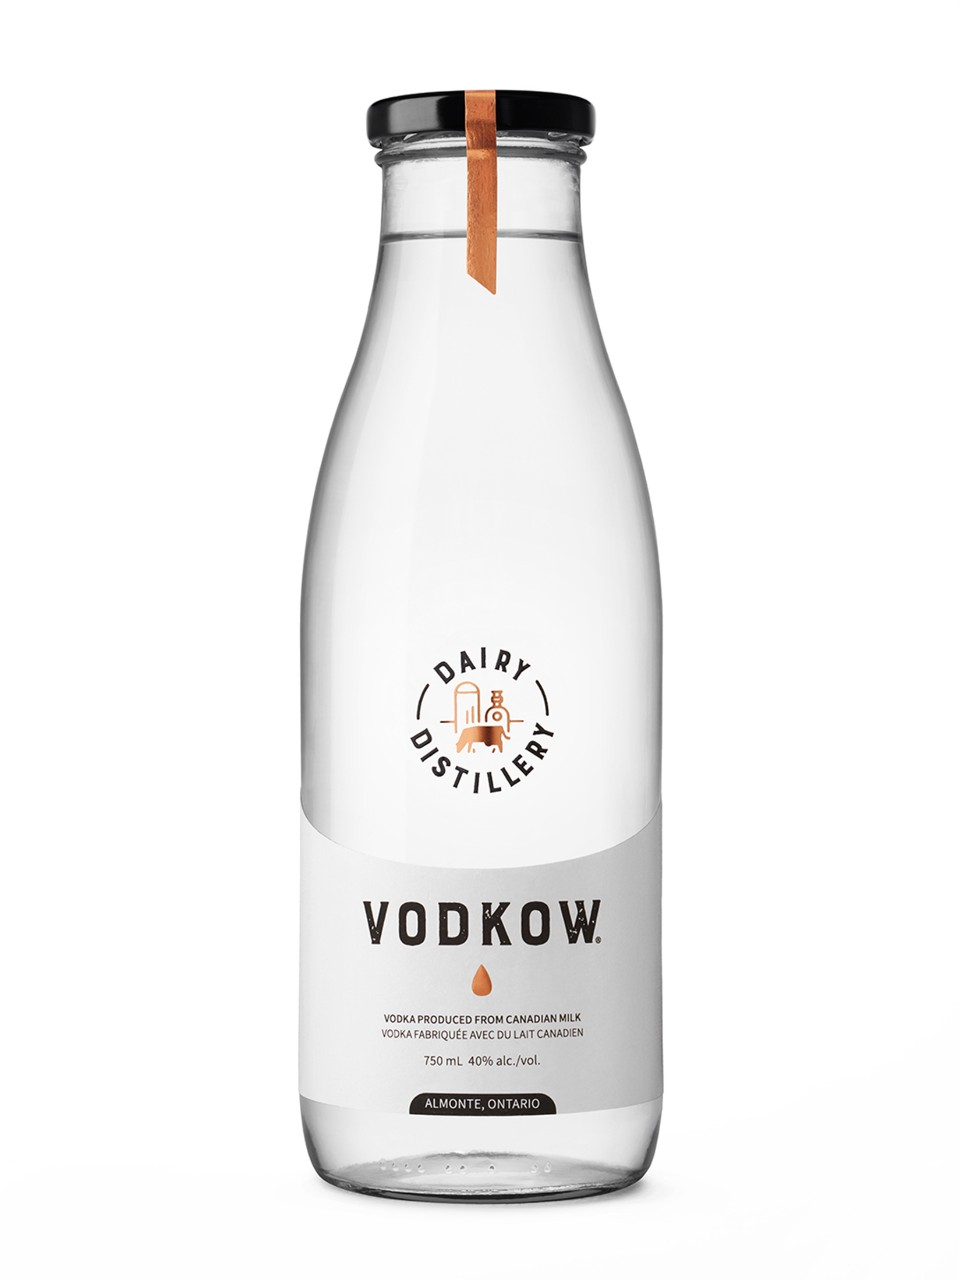 Vodkow from LCBO